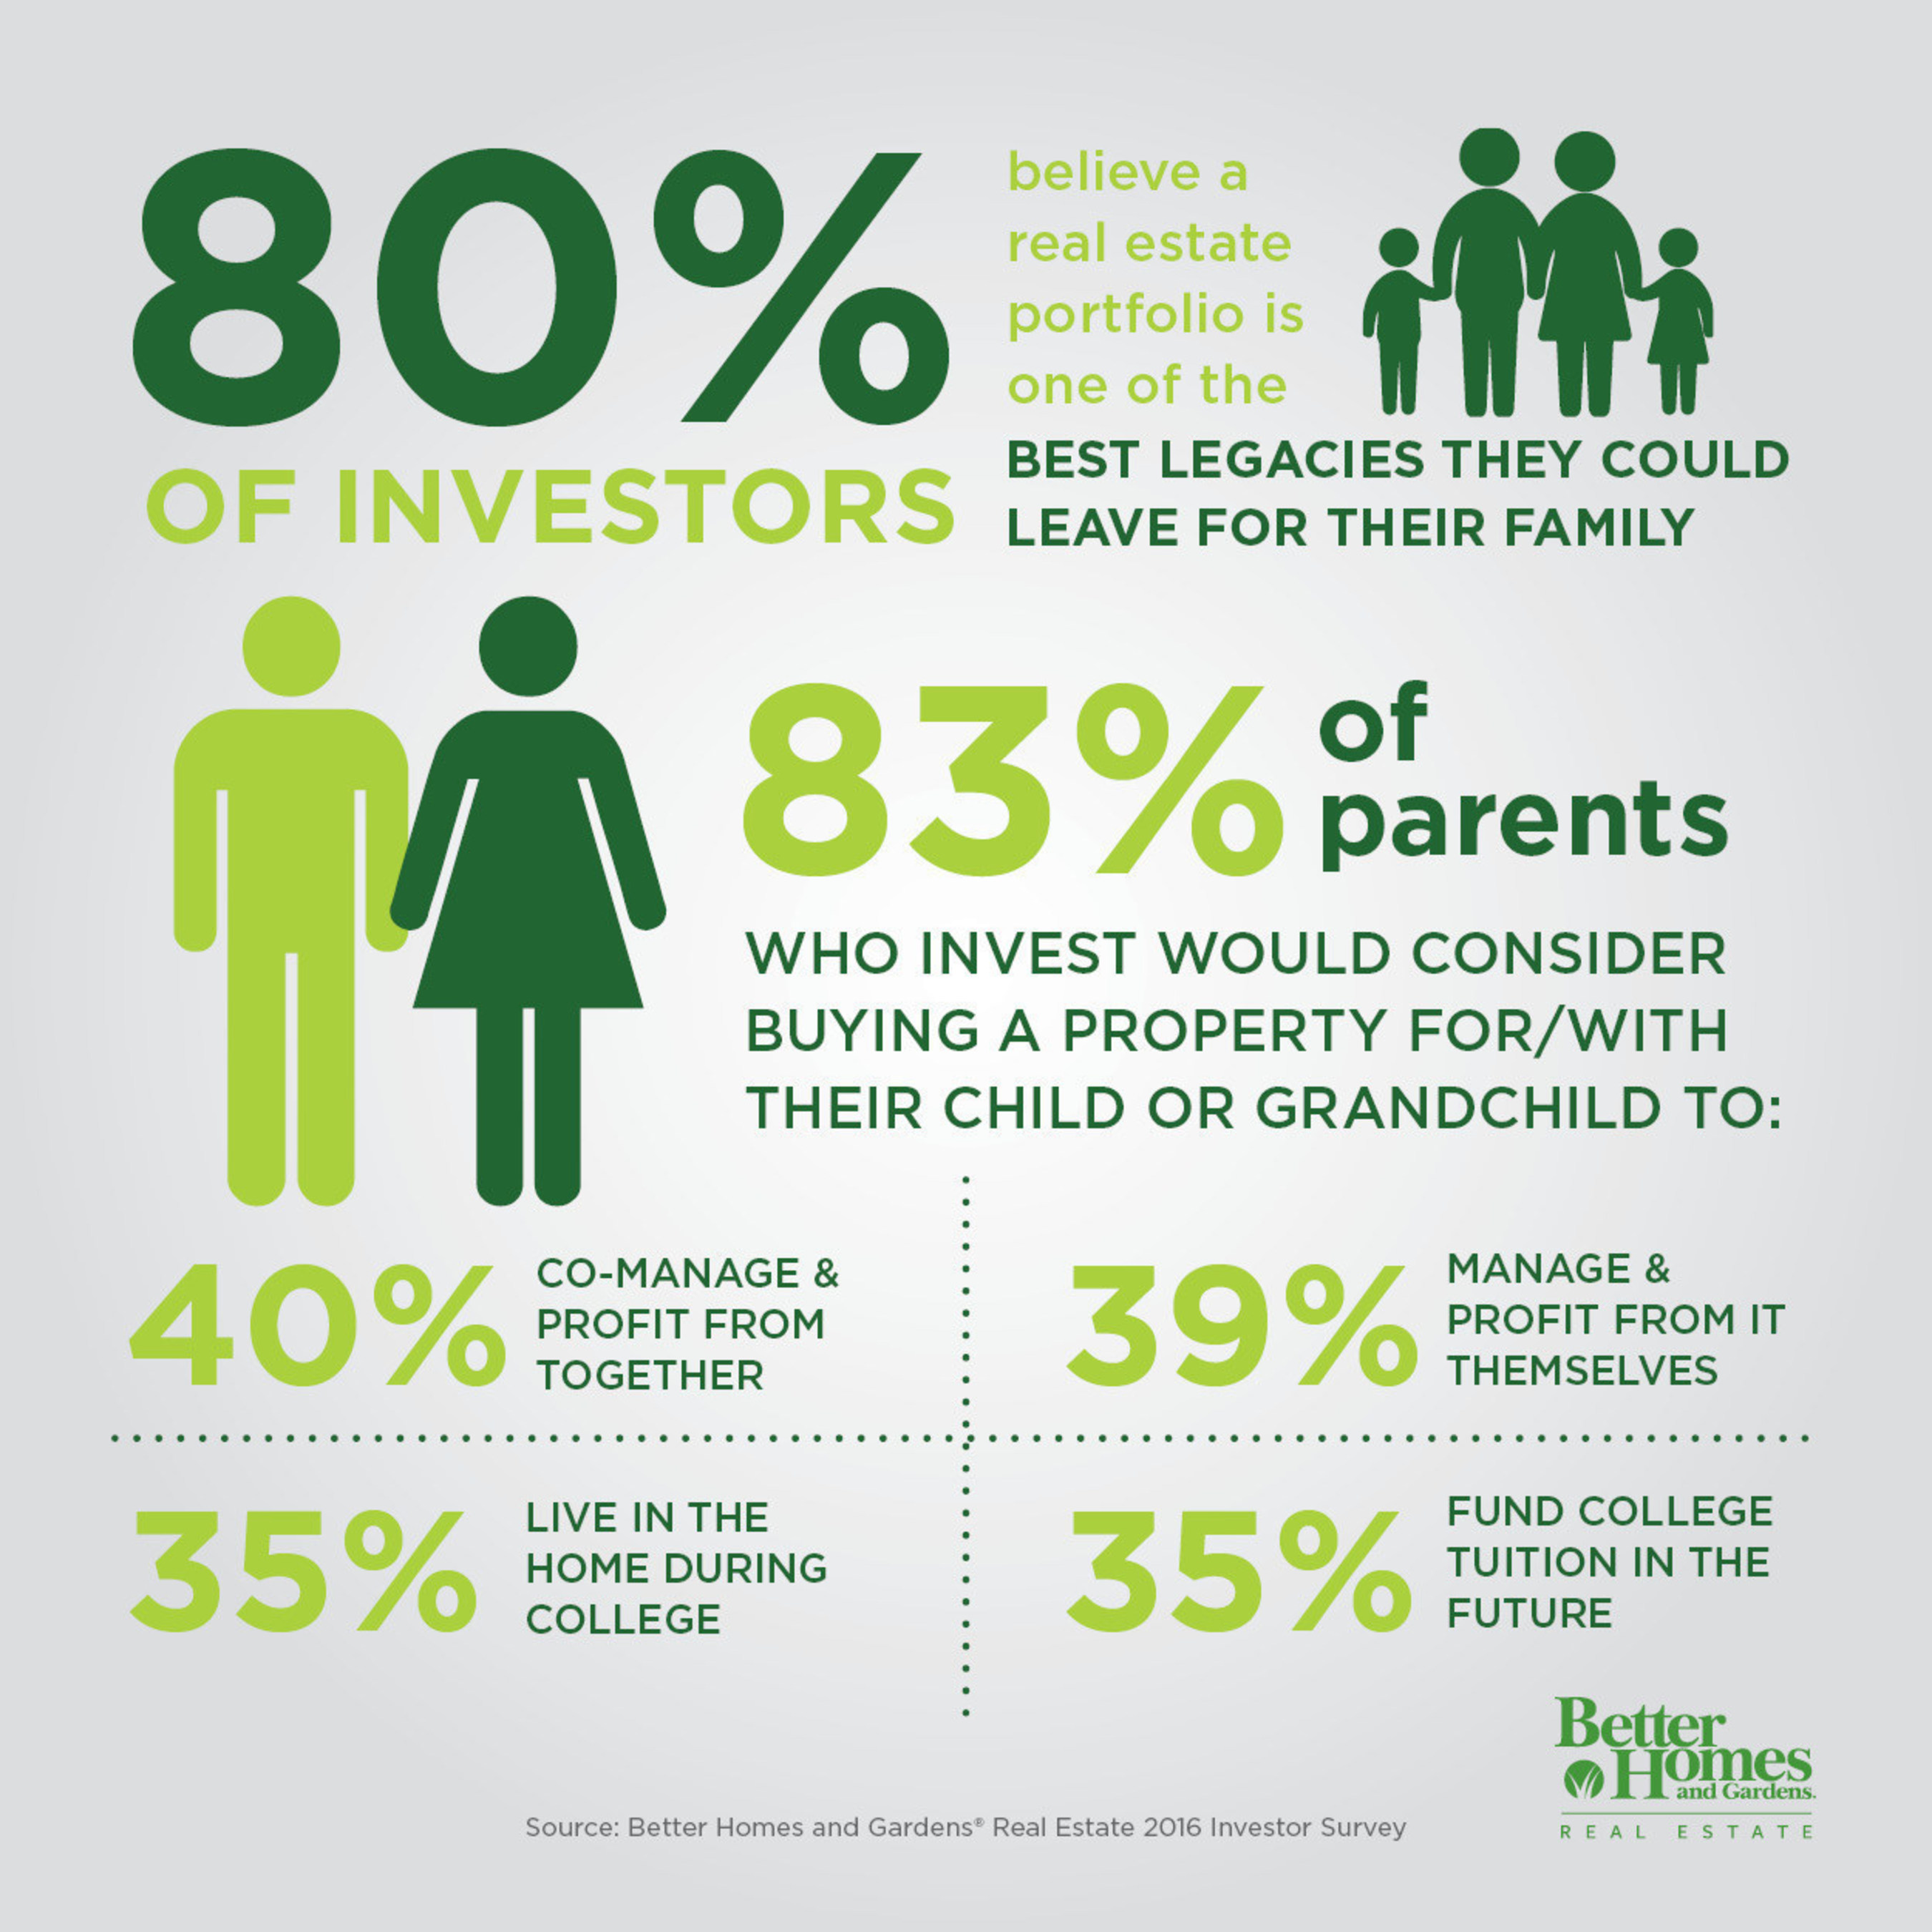 Family is a key consideration when investing in real estate finds Better Homes and Gardens Real Estate (http://www.bhgre.com)